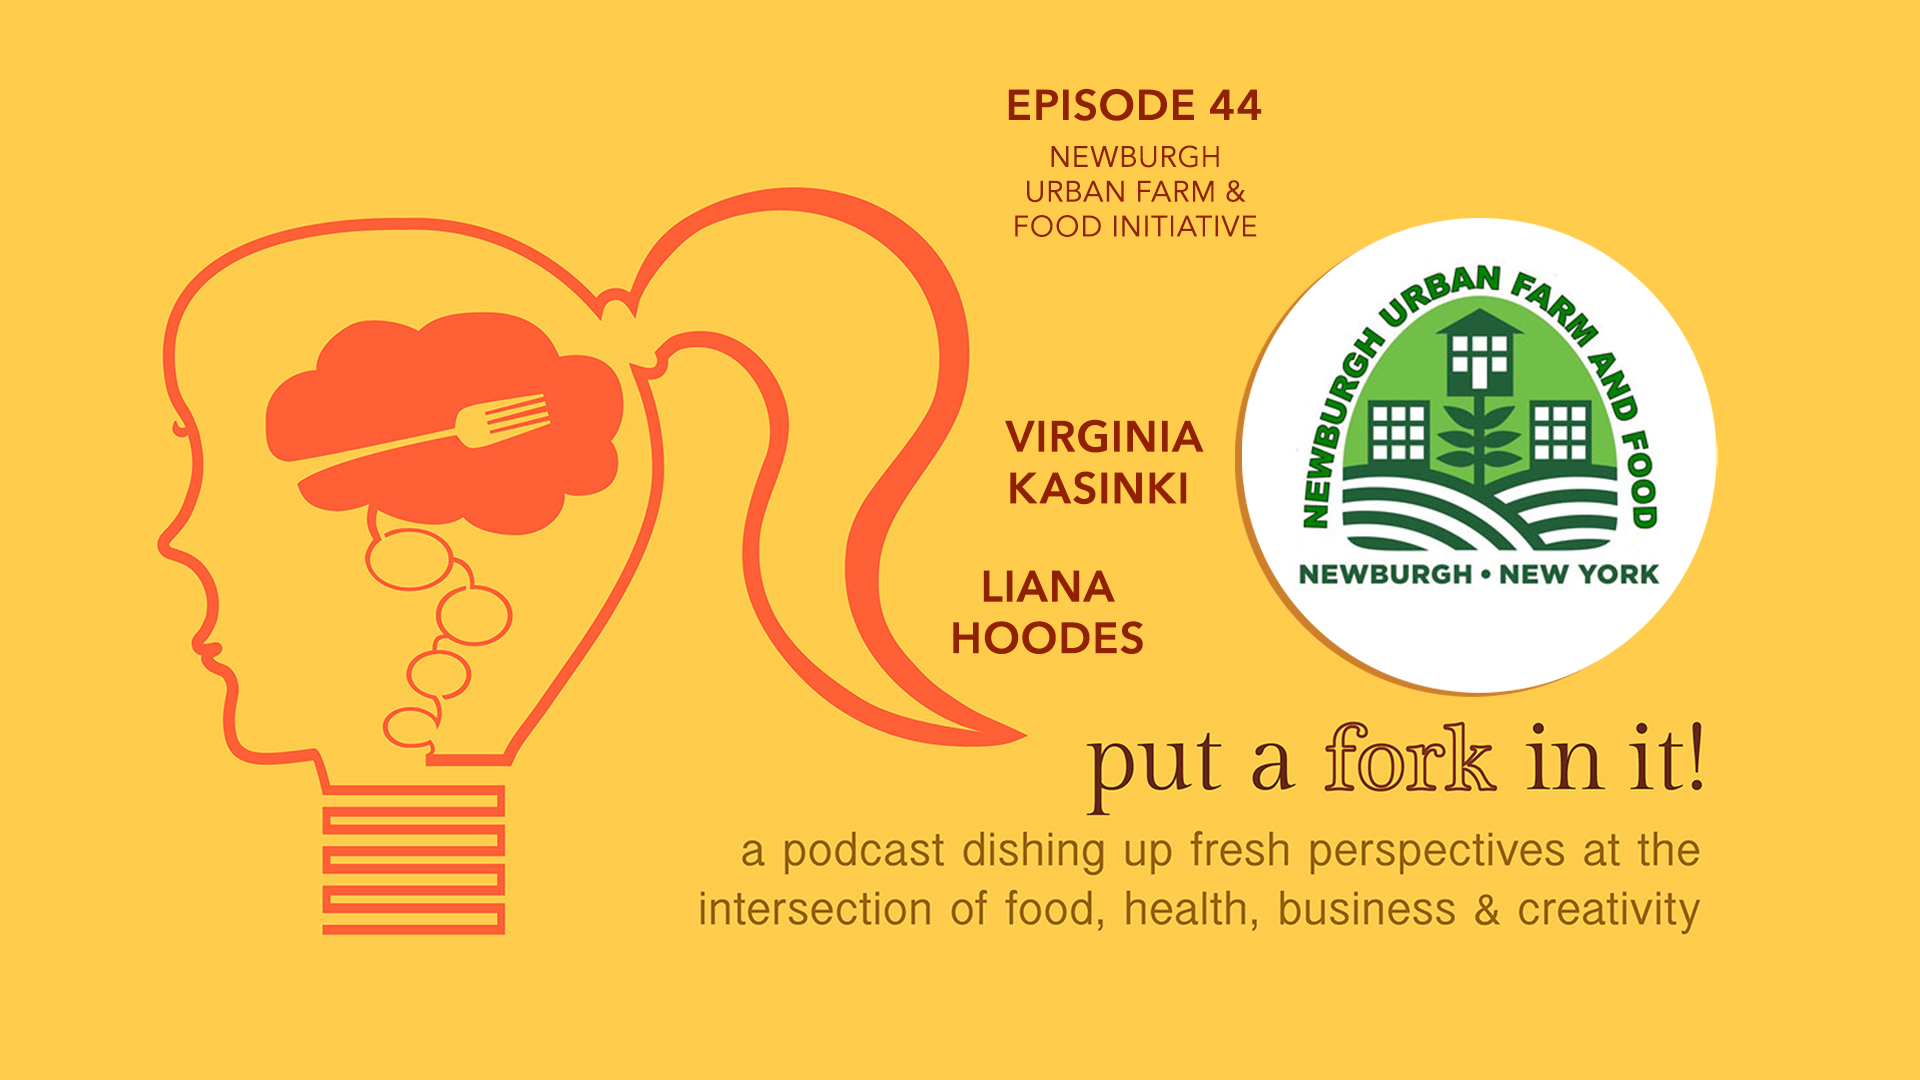 44: Newburgh Urban Farm and Food Initiative